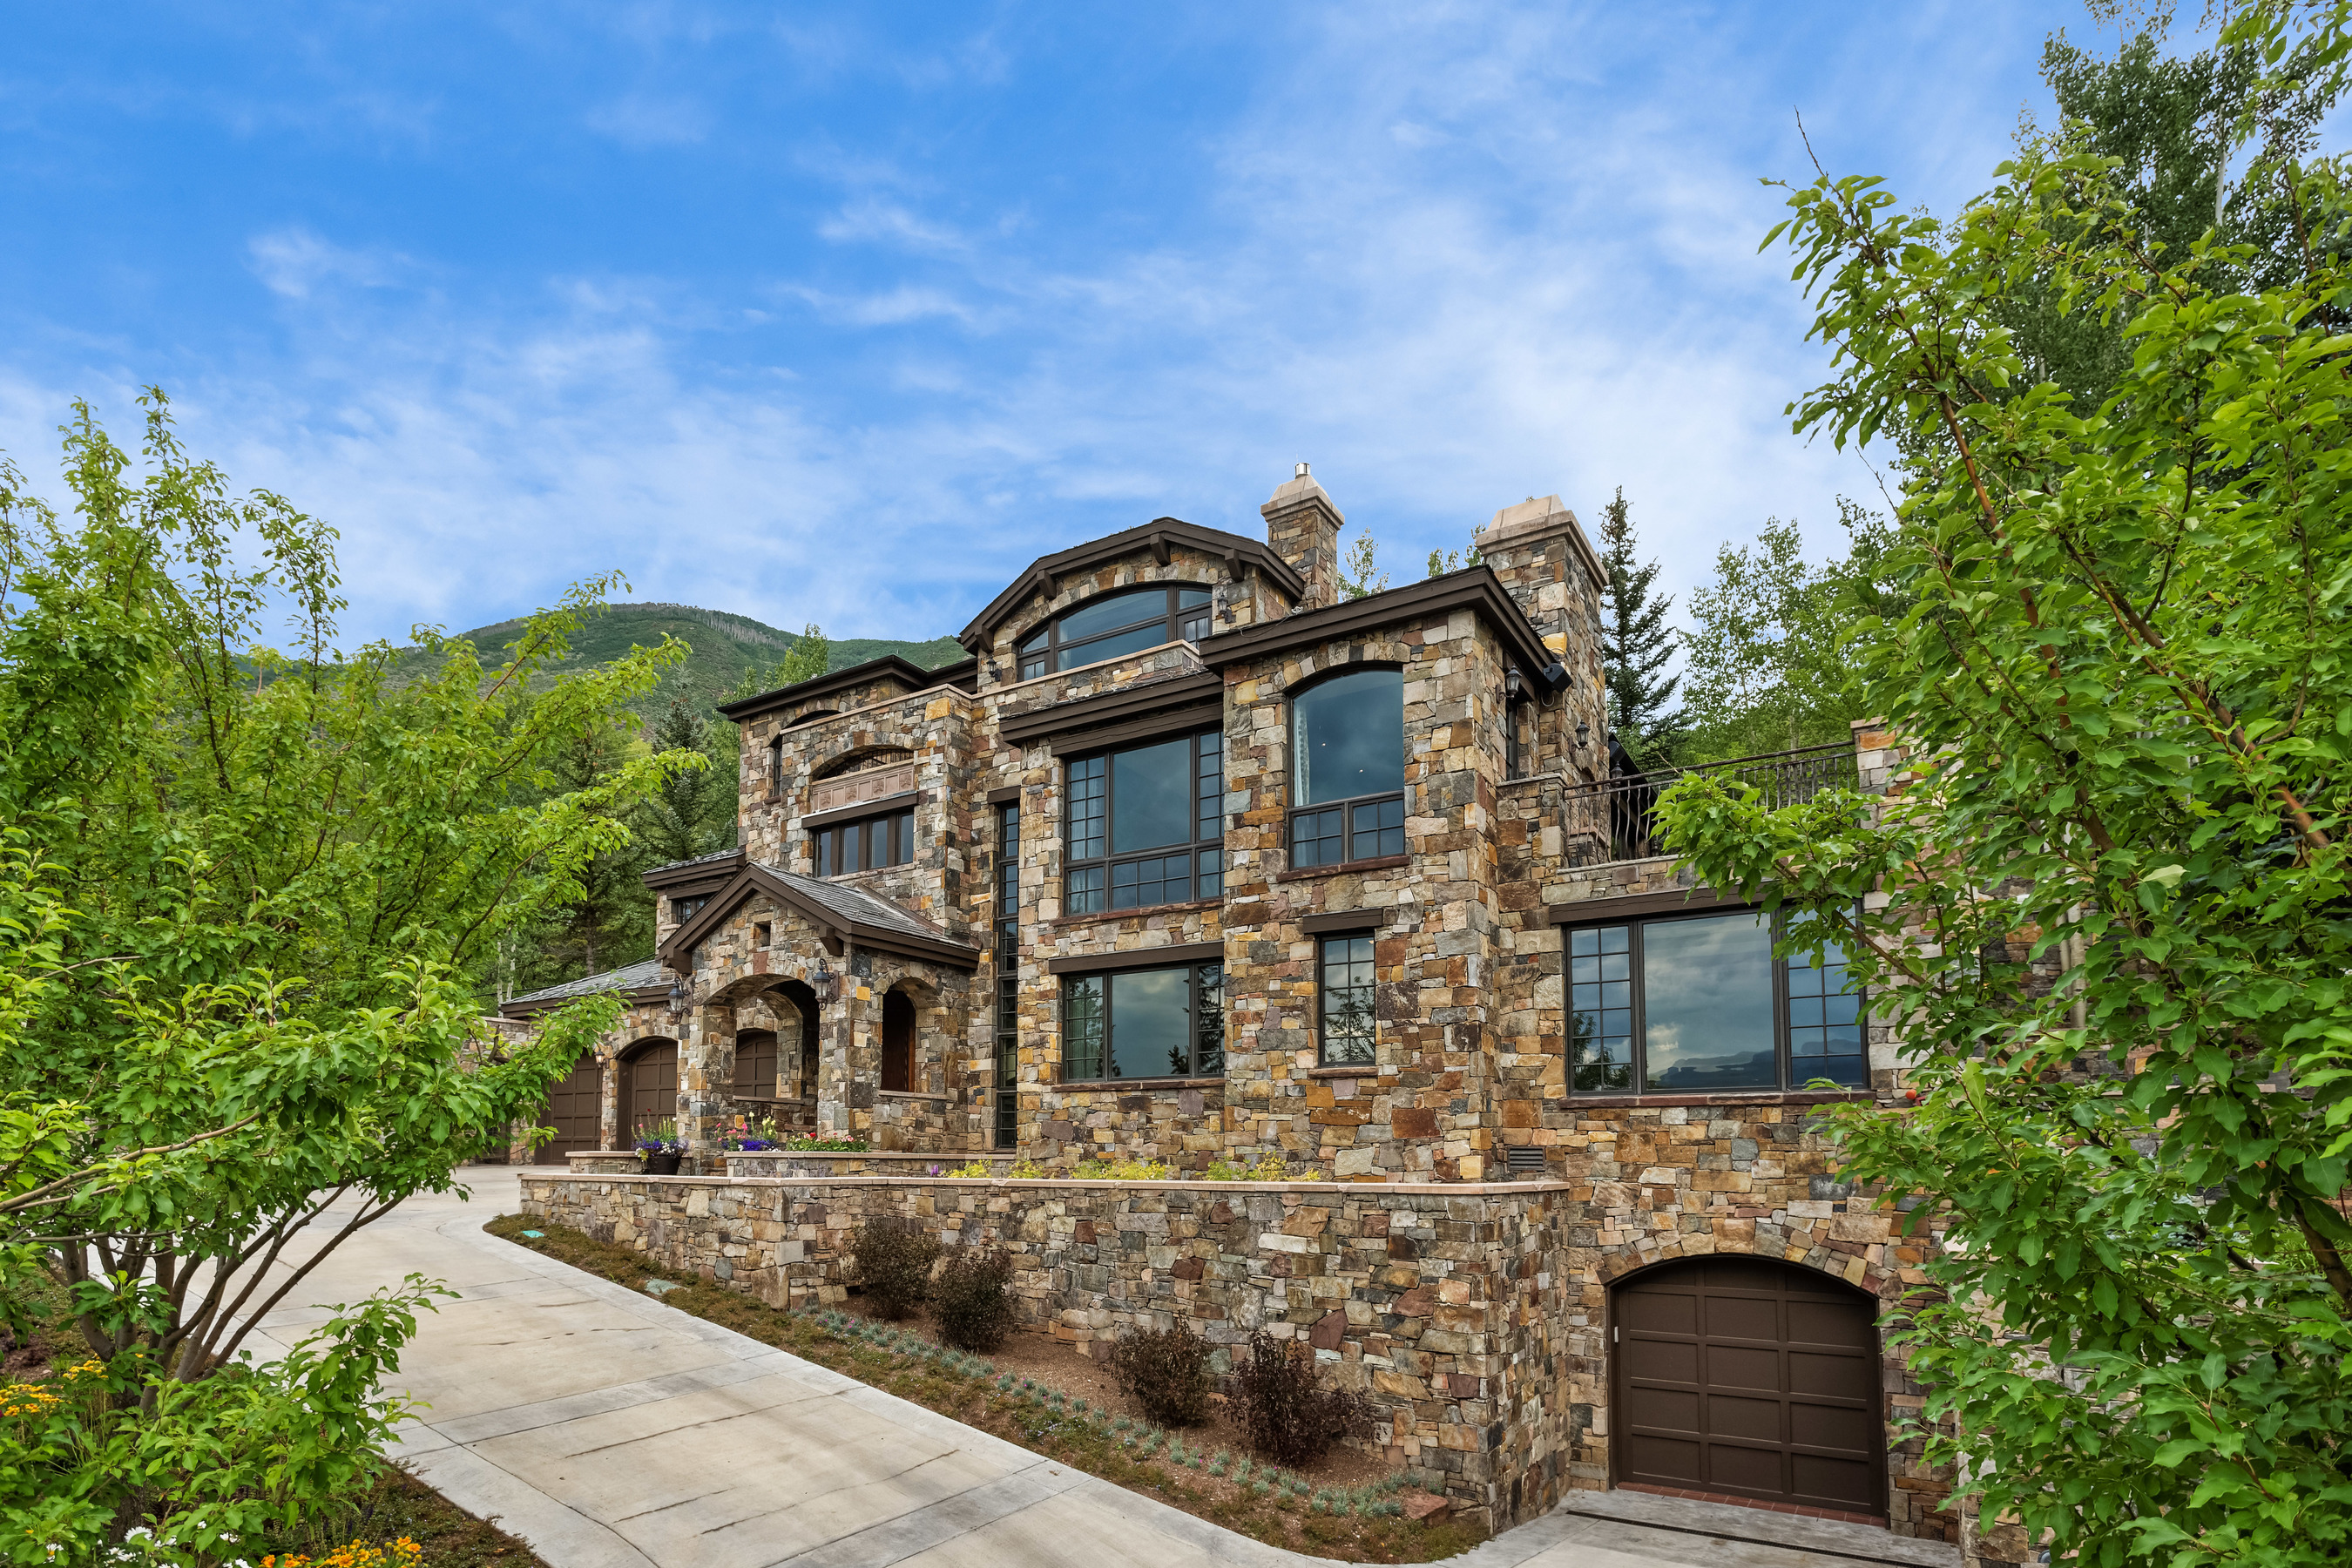 단독 가정 주택 용 매매 에 Elevated Living on Red Mountain 1124 Red Mountain Road Red Mountain, Aspen, 콜로라도, 81611 미국